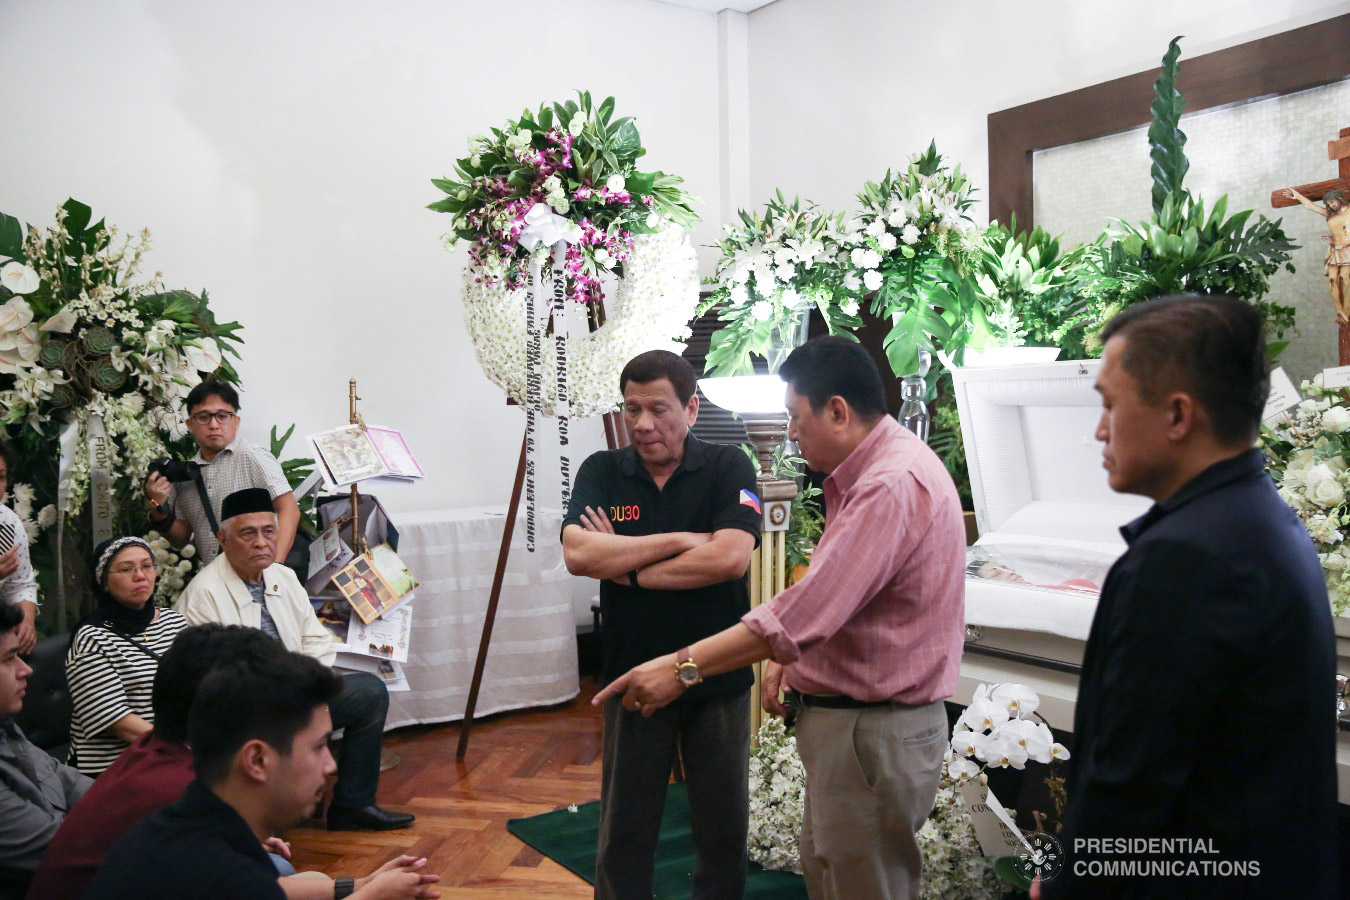 President Rodrigo Roa Duterte condoles with Labor and Employment Undersecretary Jacinto Paras and his family as the President visited the wake of the Undersecretary's wife Olivia Paras at the Heritage Park in Taguig City on February 5, 2019. ALFRED FRIAS/PRESIDENTIAL PHOTO